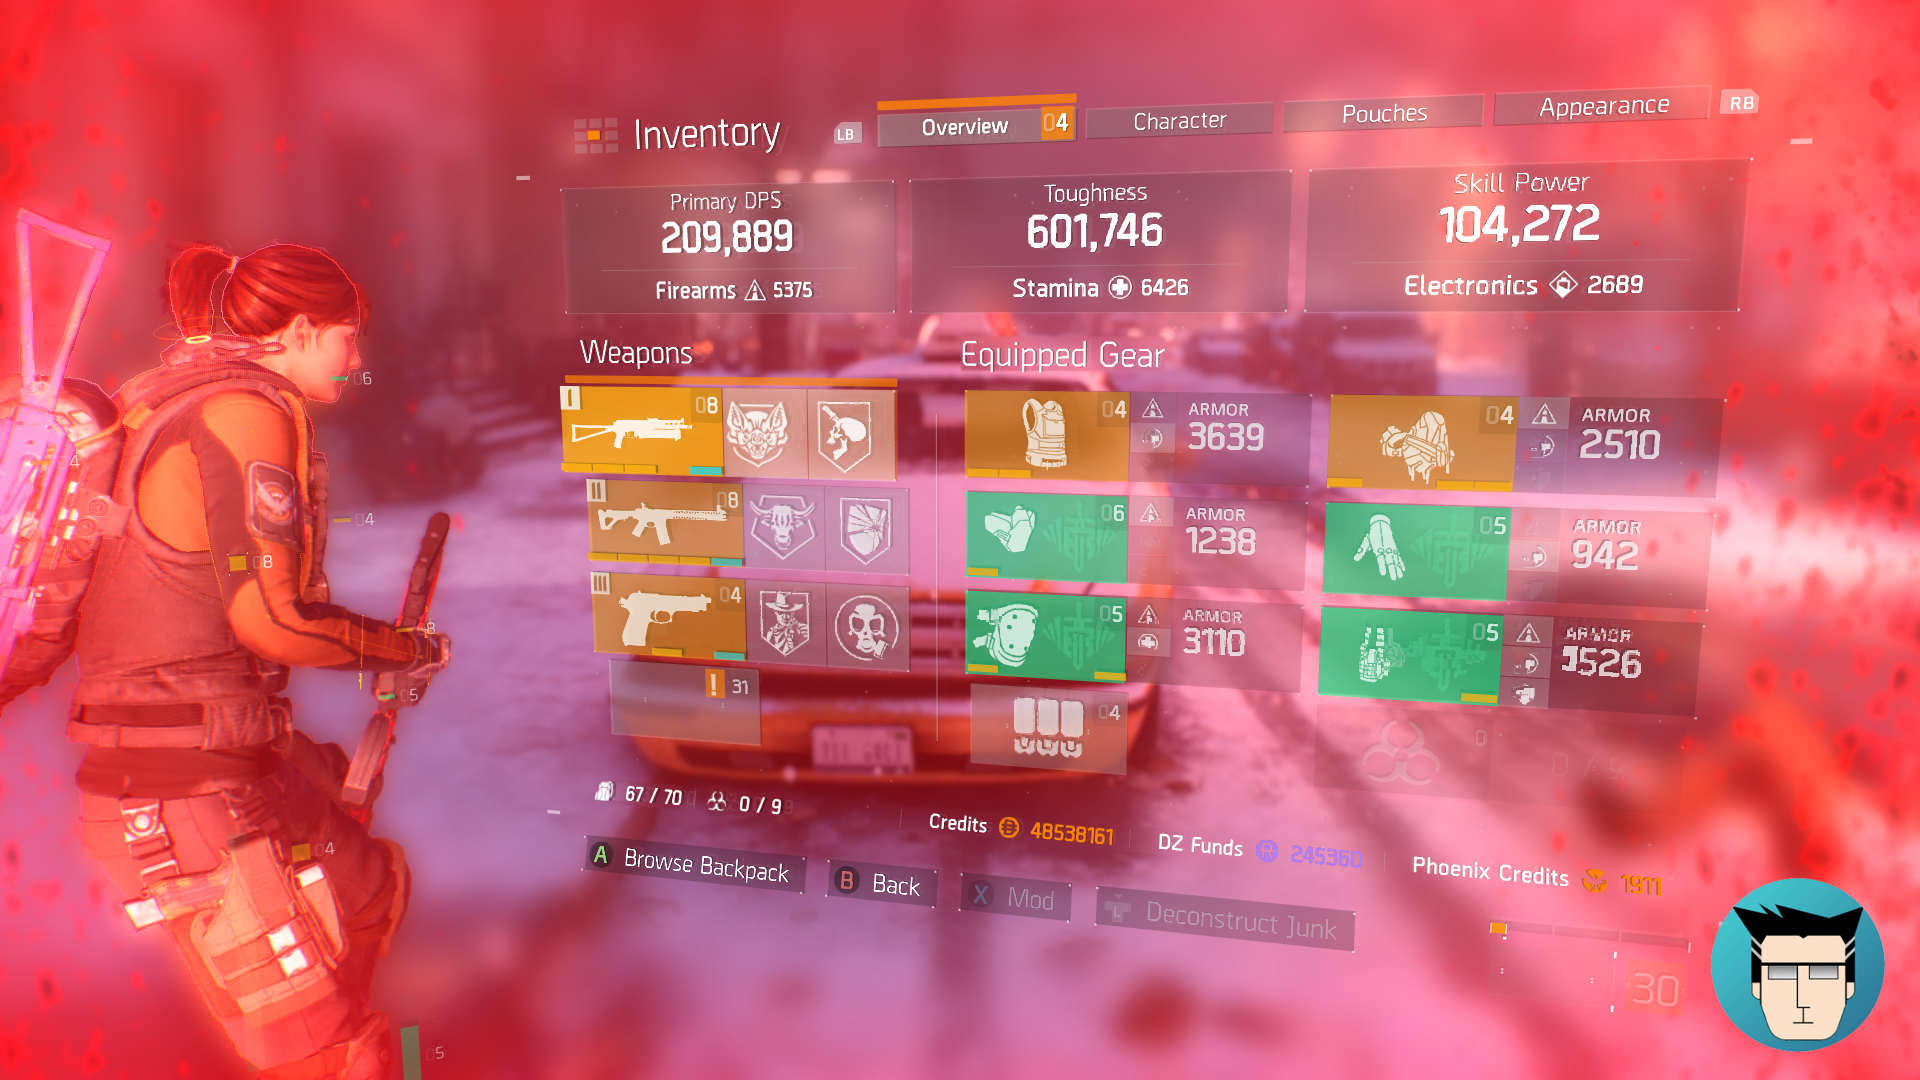 Overview   600k Toughness, buffed with critical save